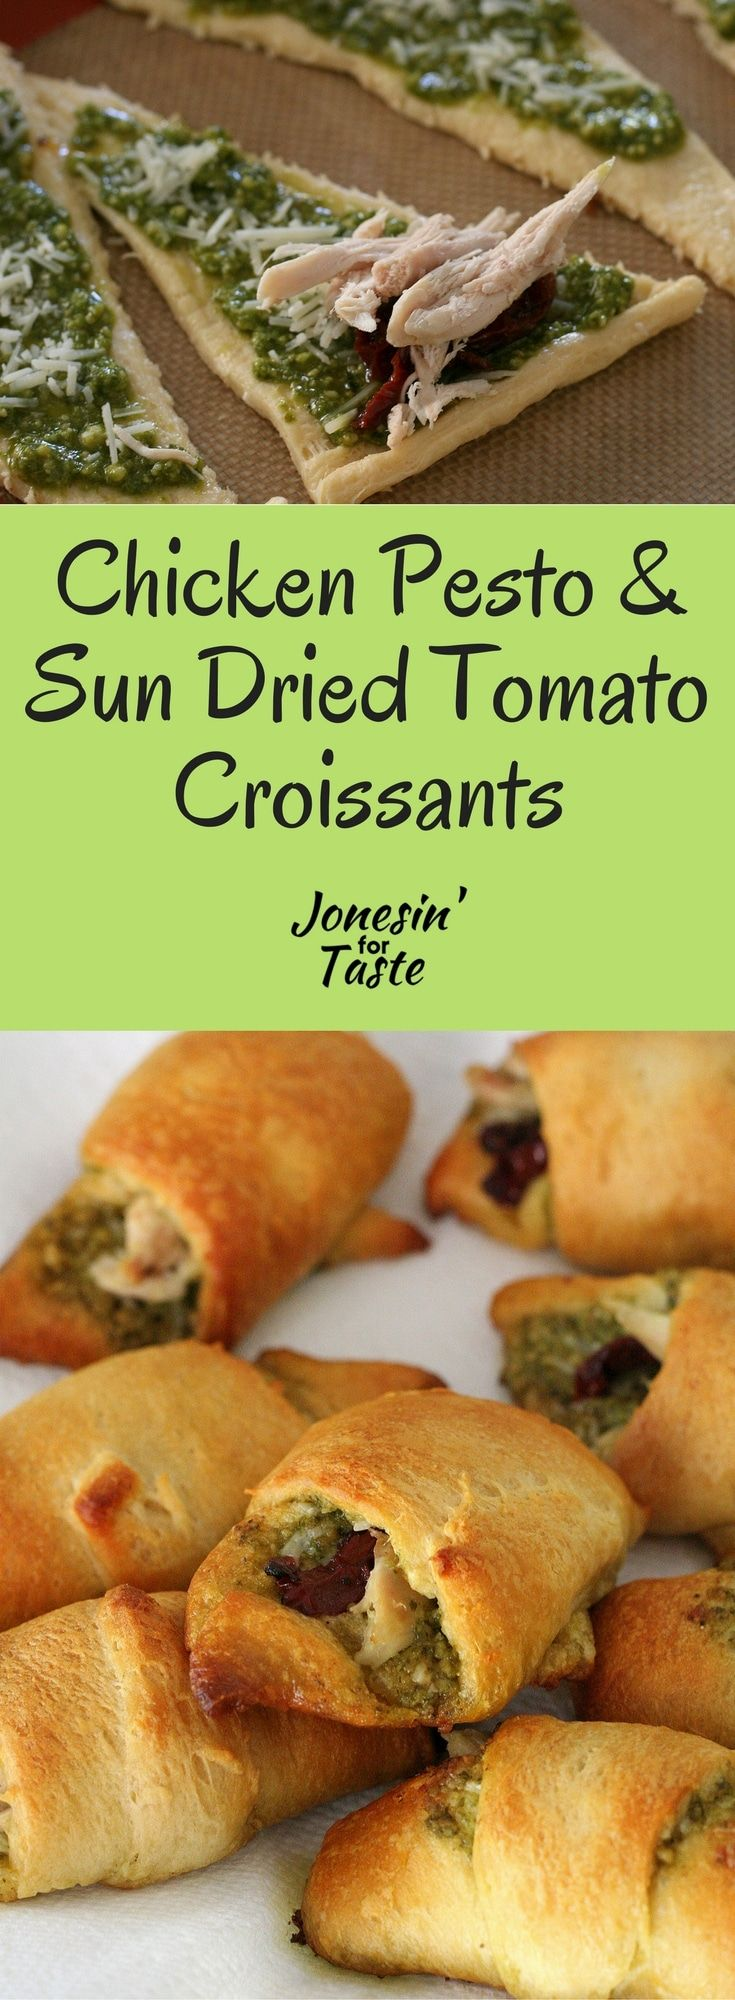 These easy chicken croissants with pesto and sun dried tomato are made with a few simple ingredients for a flavorful savory appetizer. via @jonesinfortaste